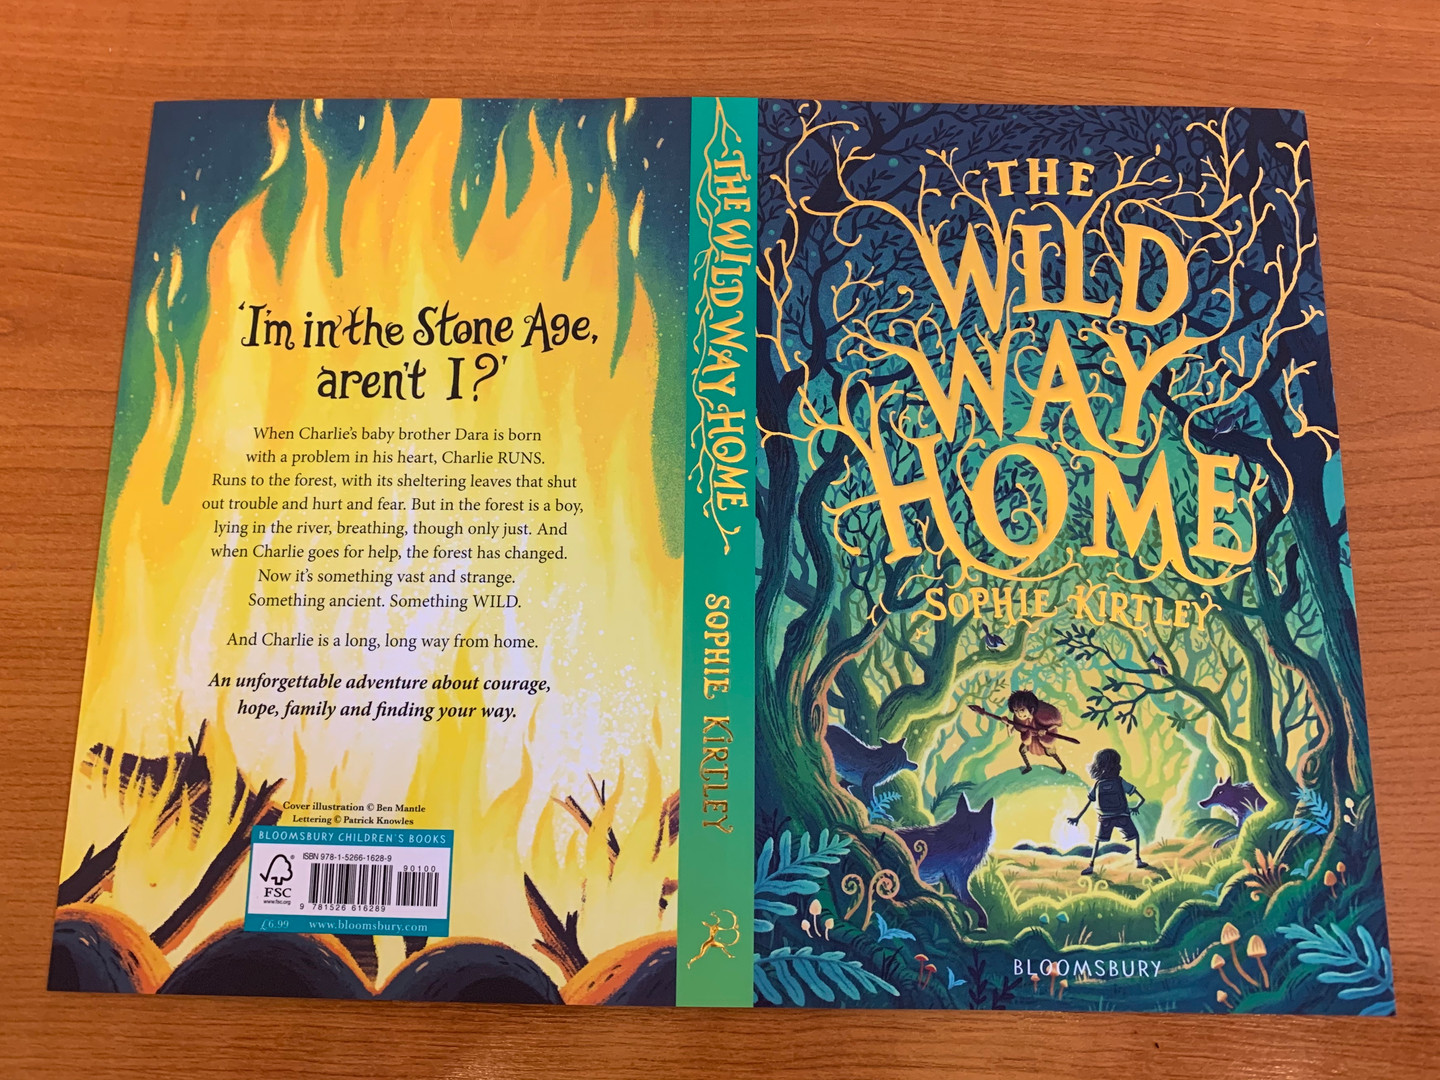 First glimpse of the cover of The Wild Way Home